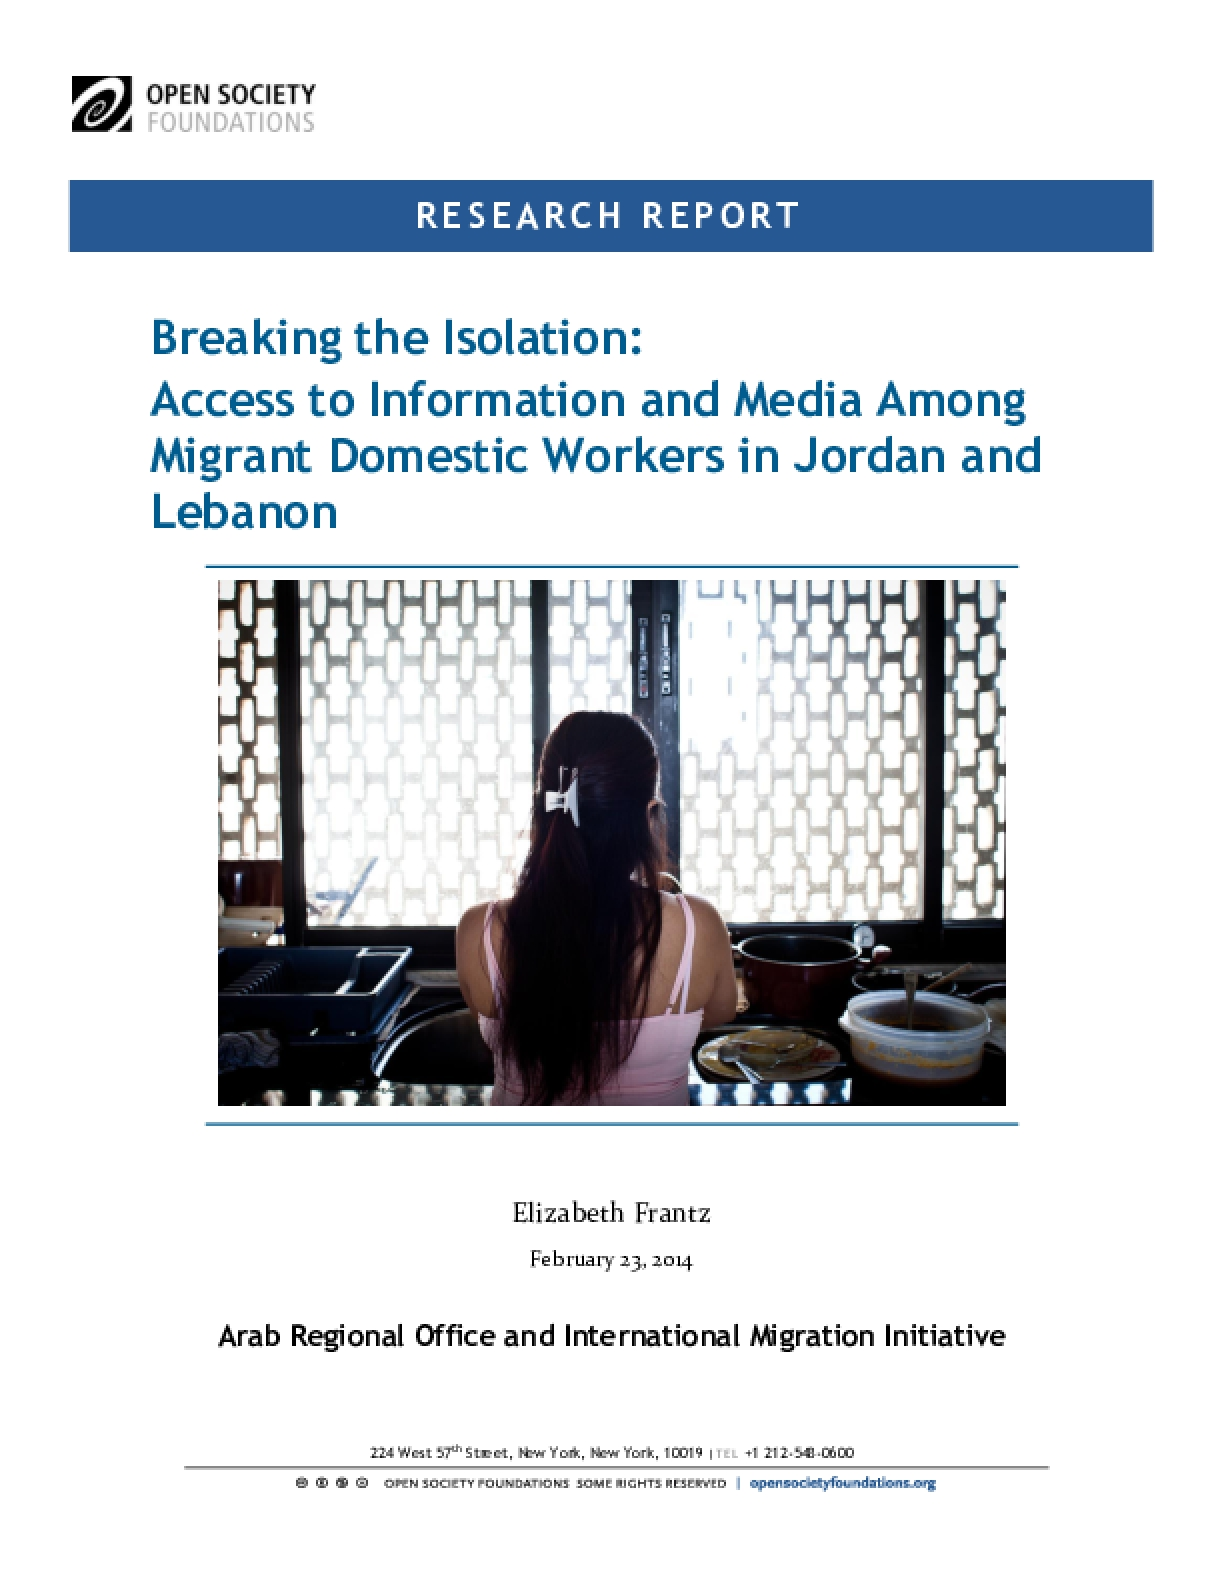 Breaking the Isolation: Access to Information and Media Among Migrant Domestic Workers in Jordan and Lebanon